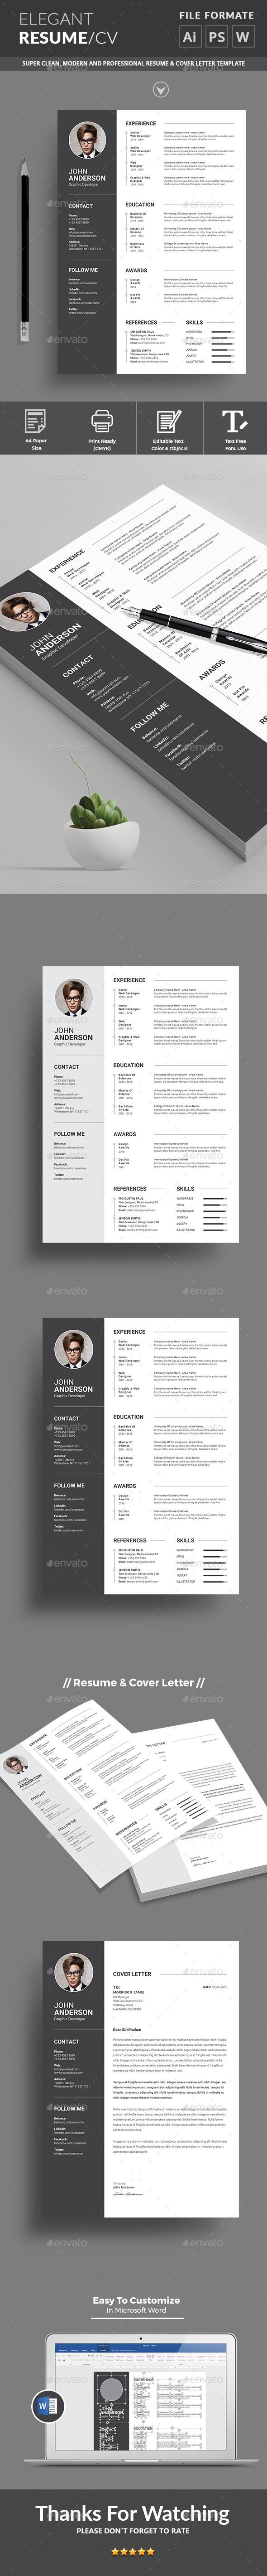 executive housekeeper resume%0A Resume  Resumes Stationery Download here  https   graphicriver net item